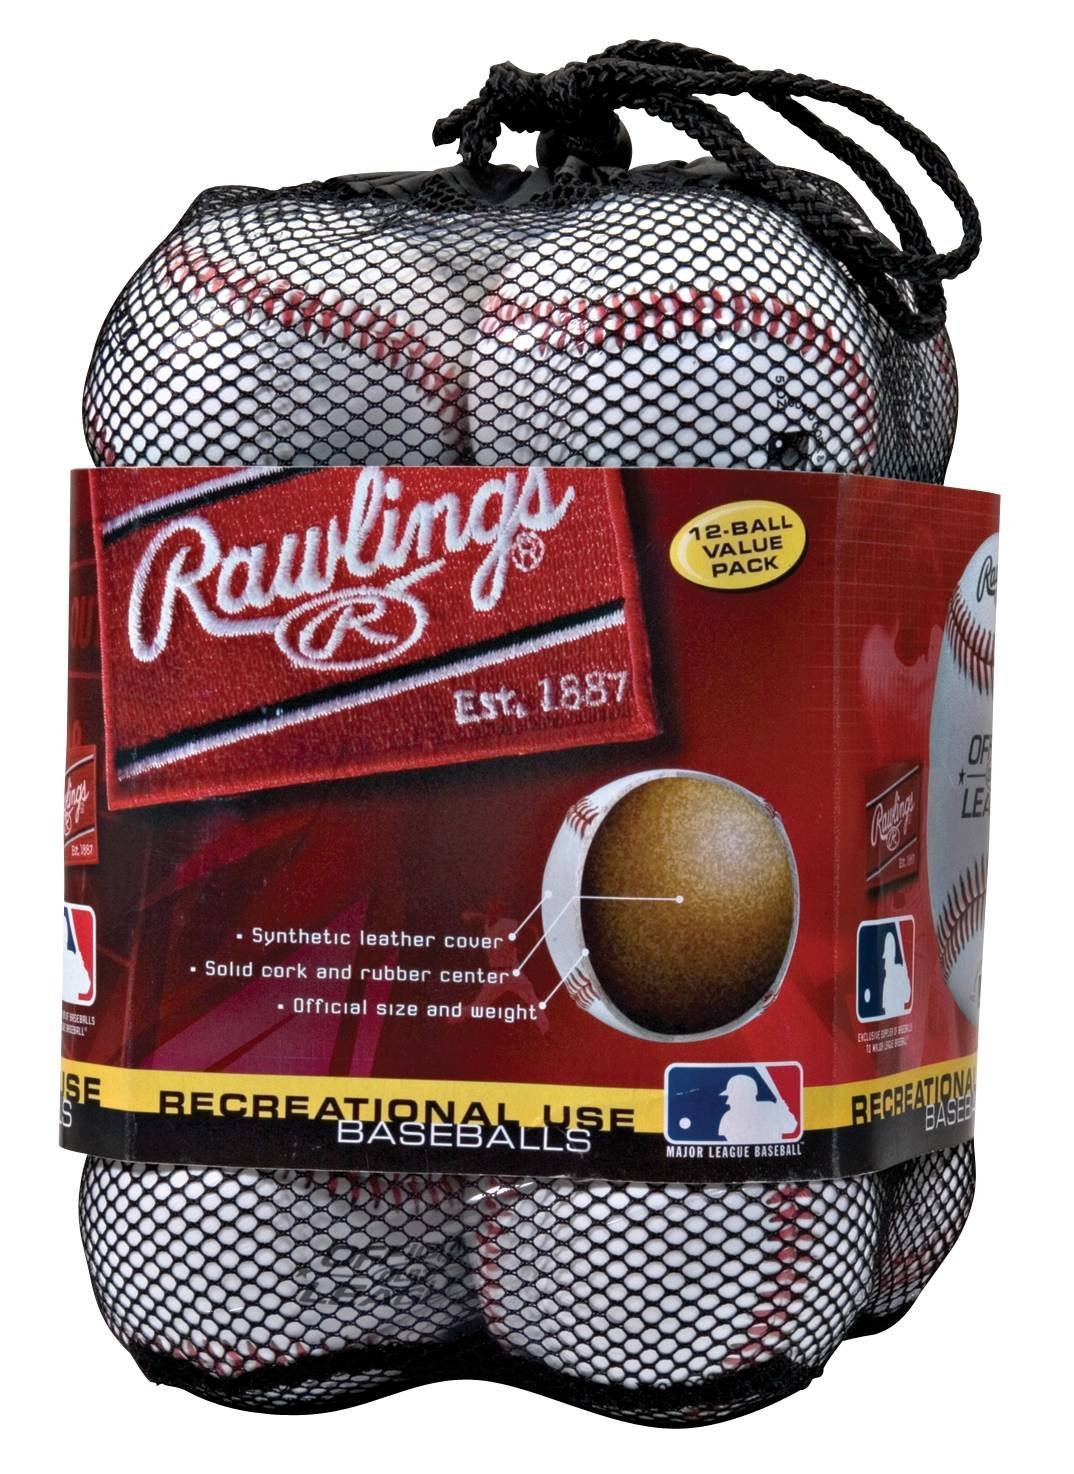 Rawlings OLB3 Recreational Use Baseballs, Pack of 12 Worth OLB3BAG12